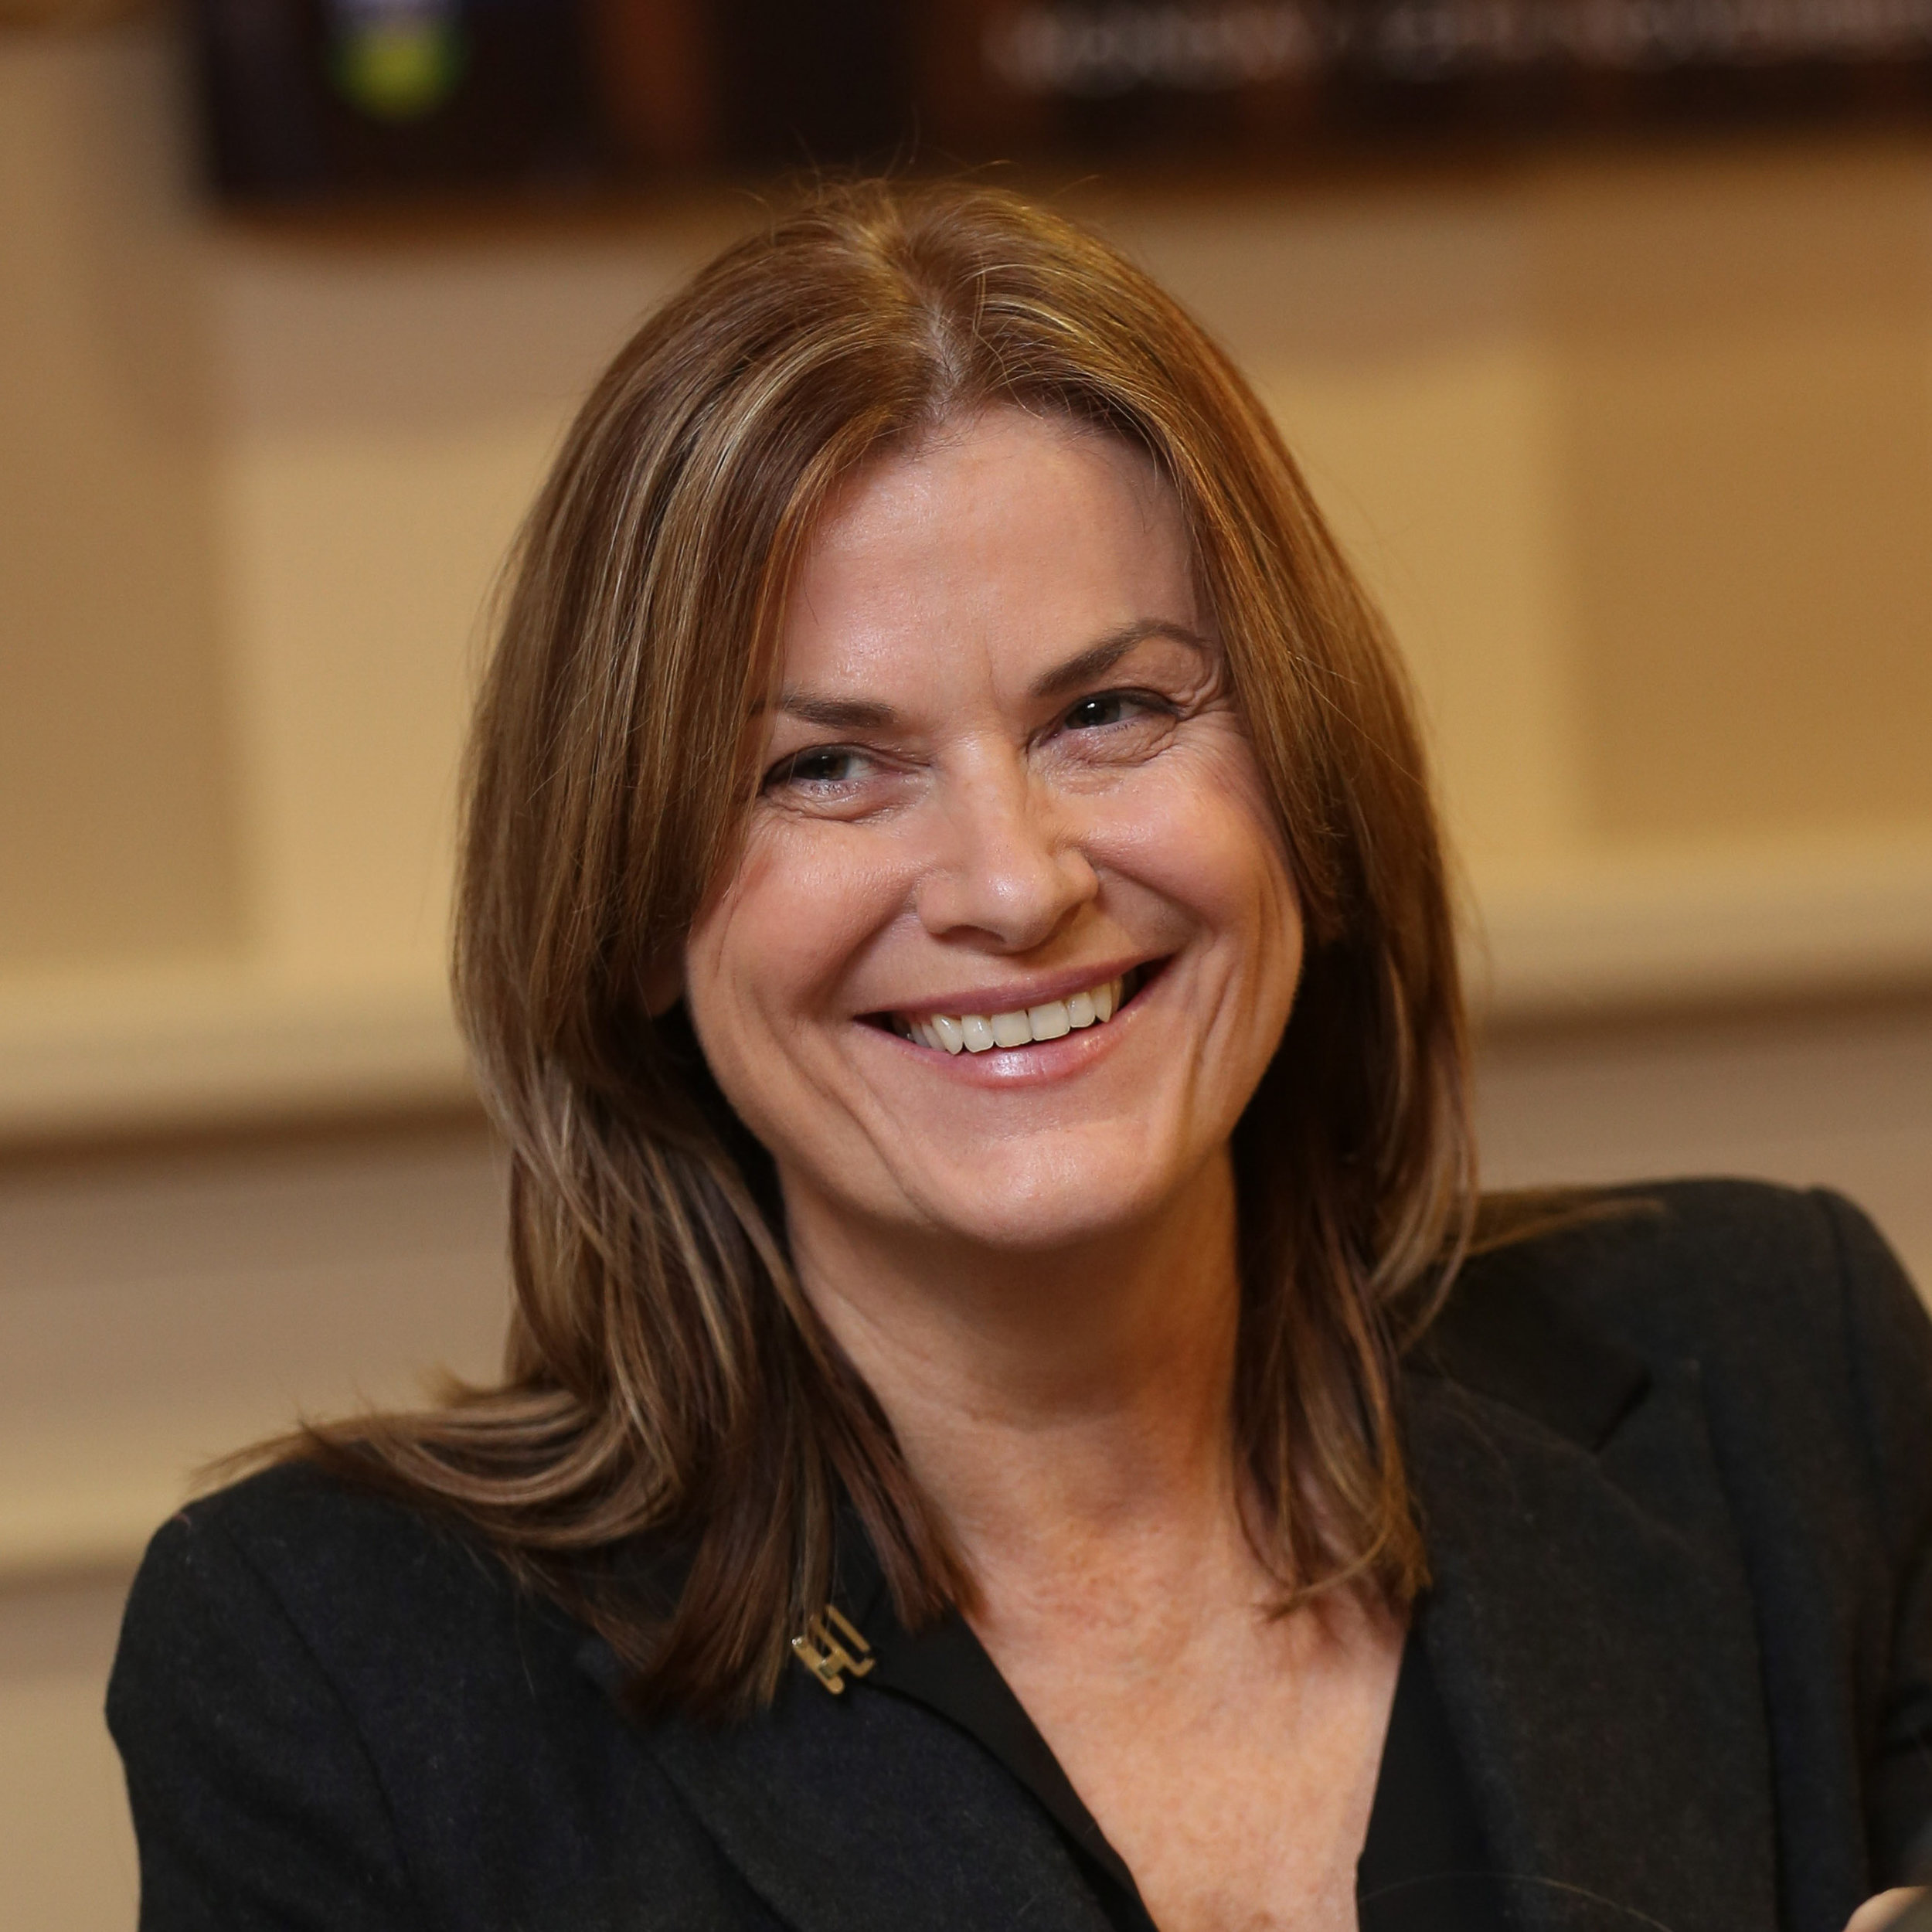 Dr Sabina Brennan - Principal Investigator, School of Psychology, Trinity College Dublin and author of 100 Days to a Younger BrainRead Biography